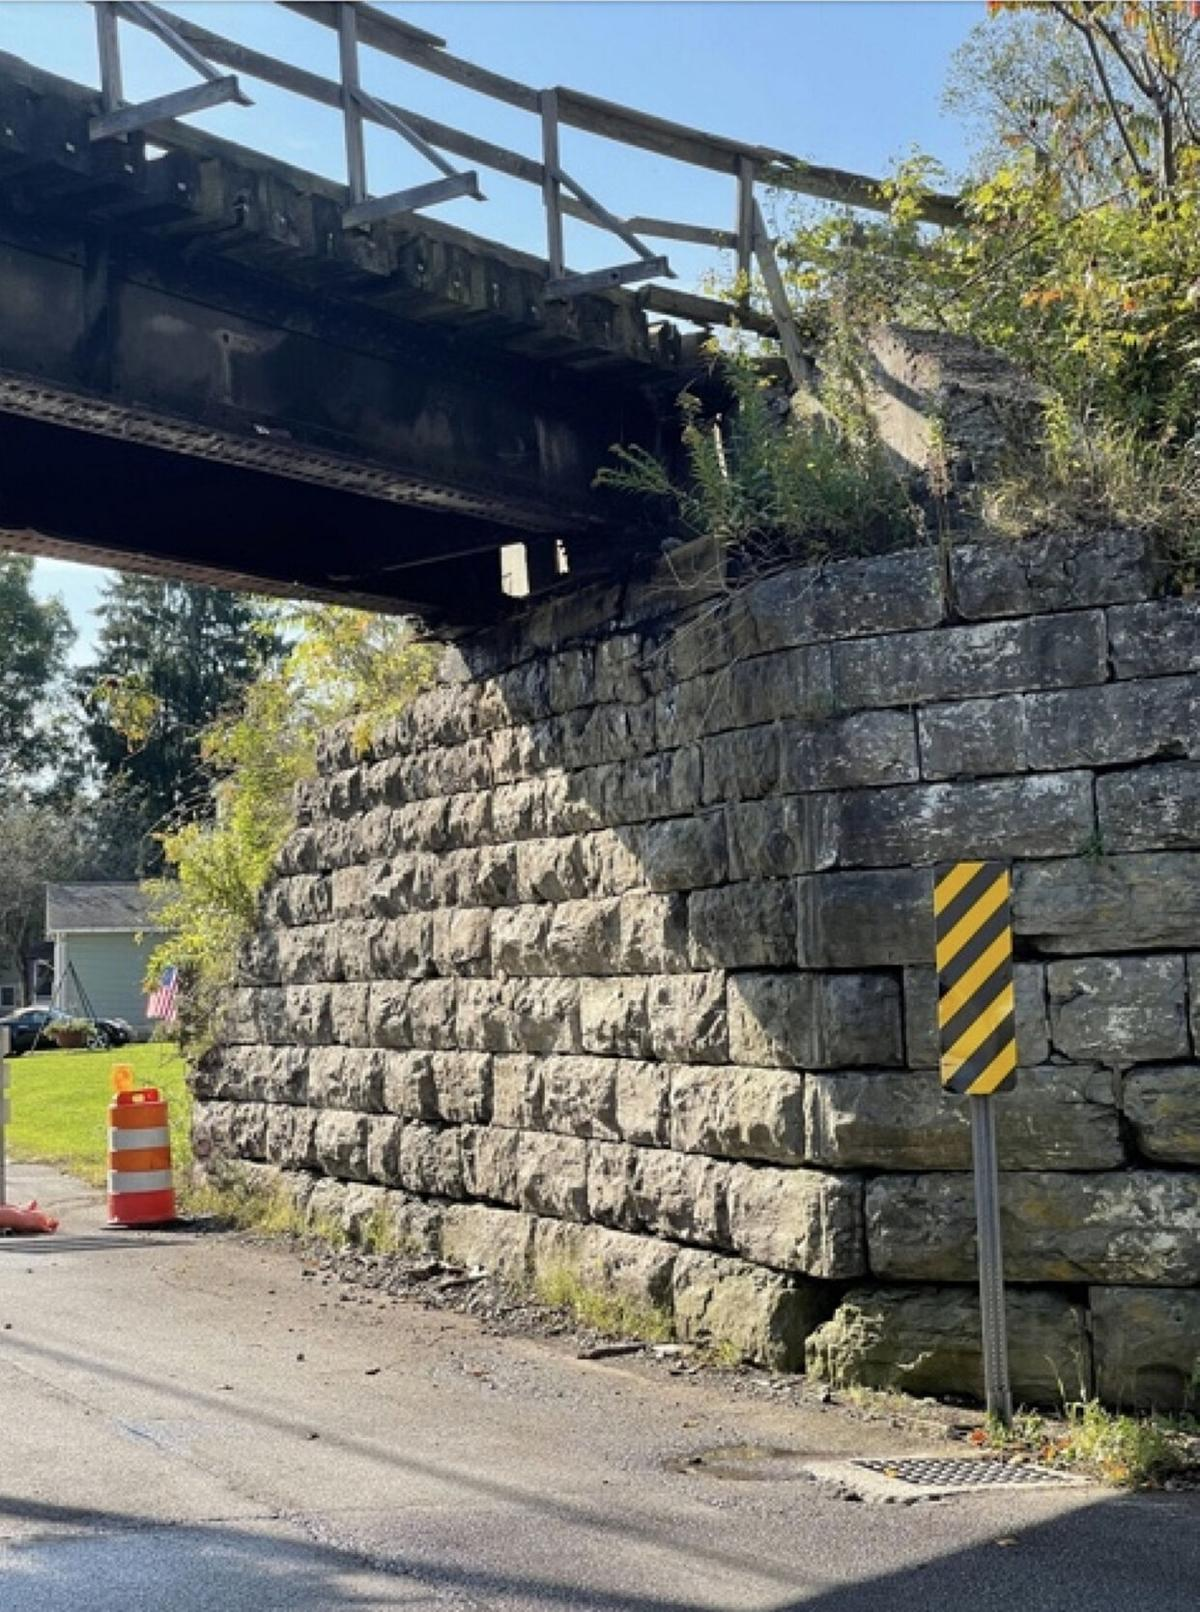 Highway reopens as bridge removed